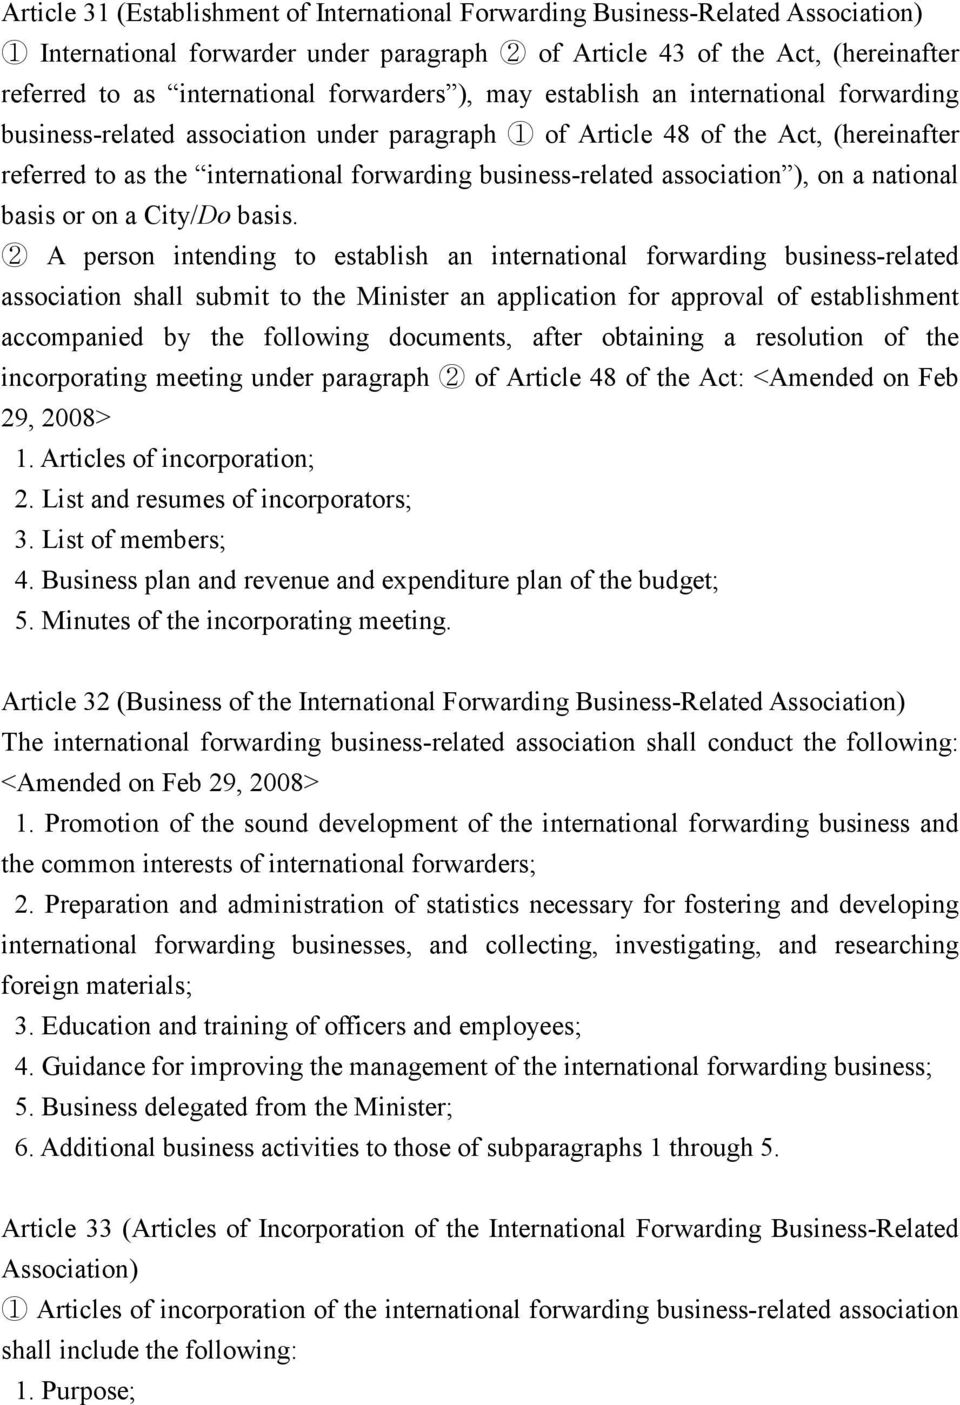 business-related association ), on a national basis or on a City/Do basis.